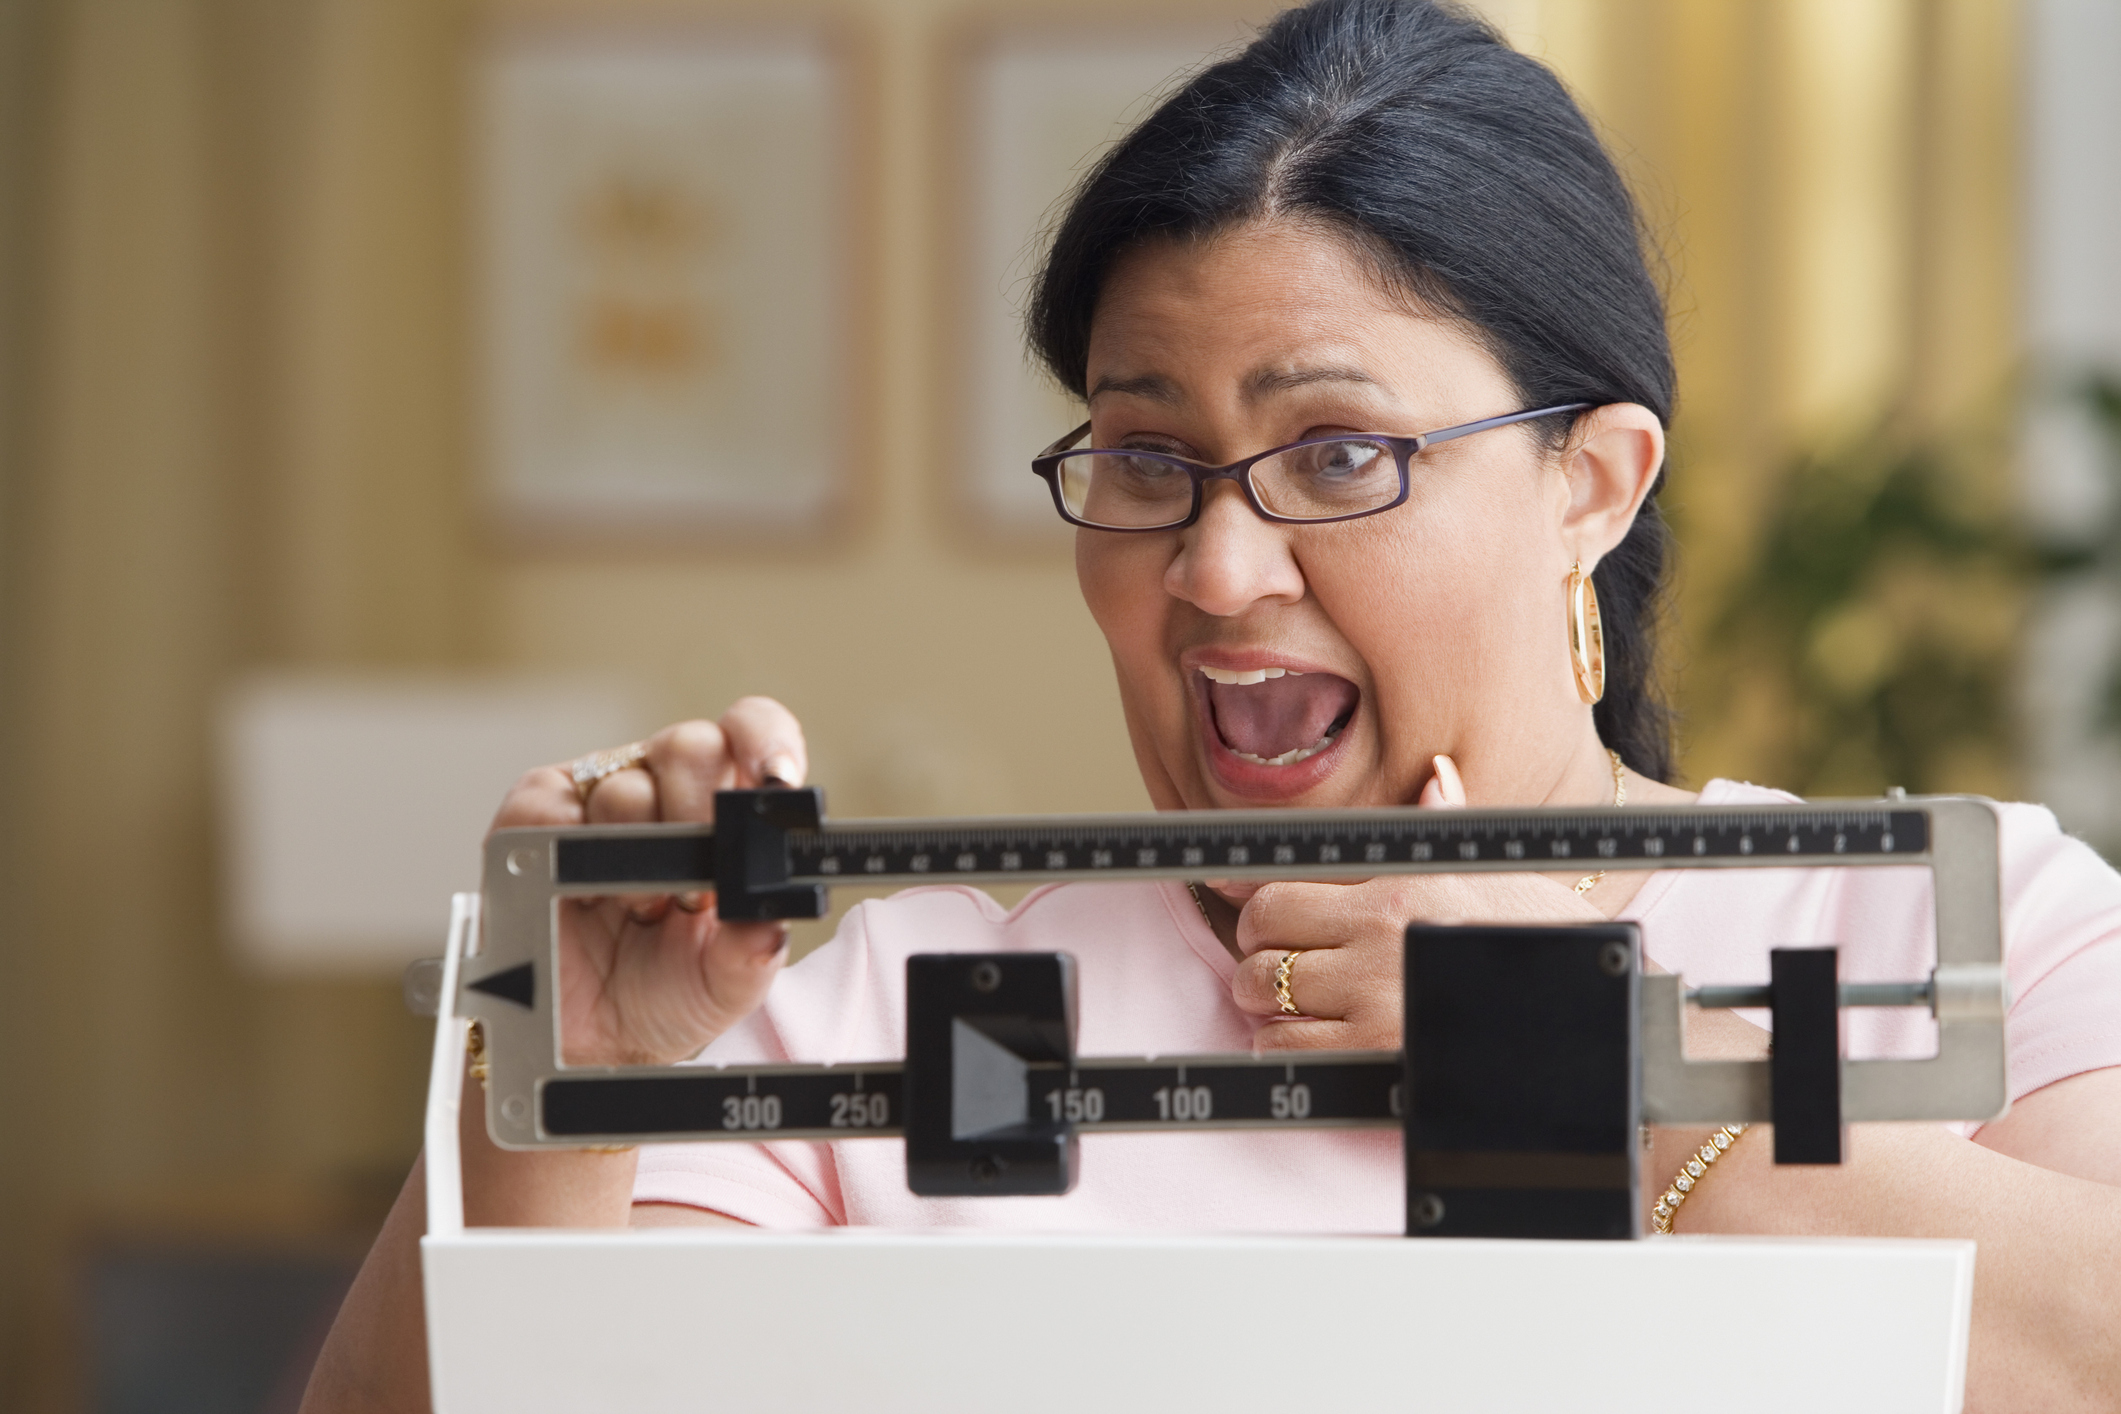 57532913-shocked-woman-weighing-herselfjpg